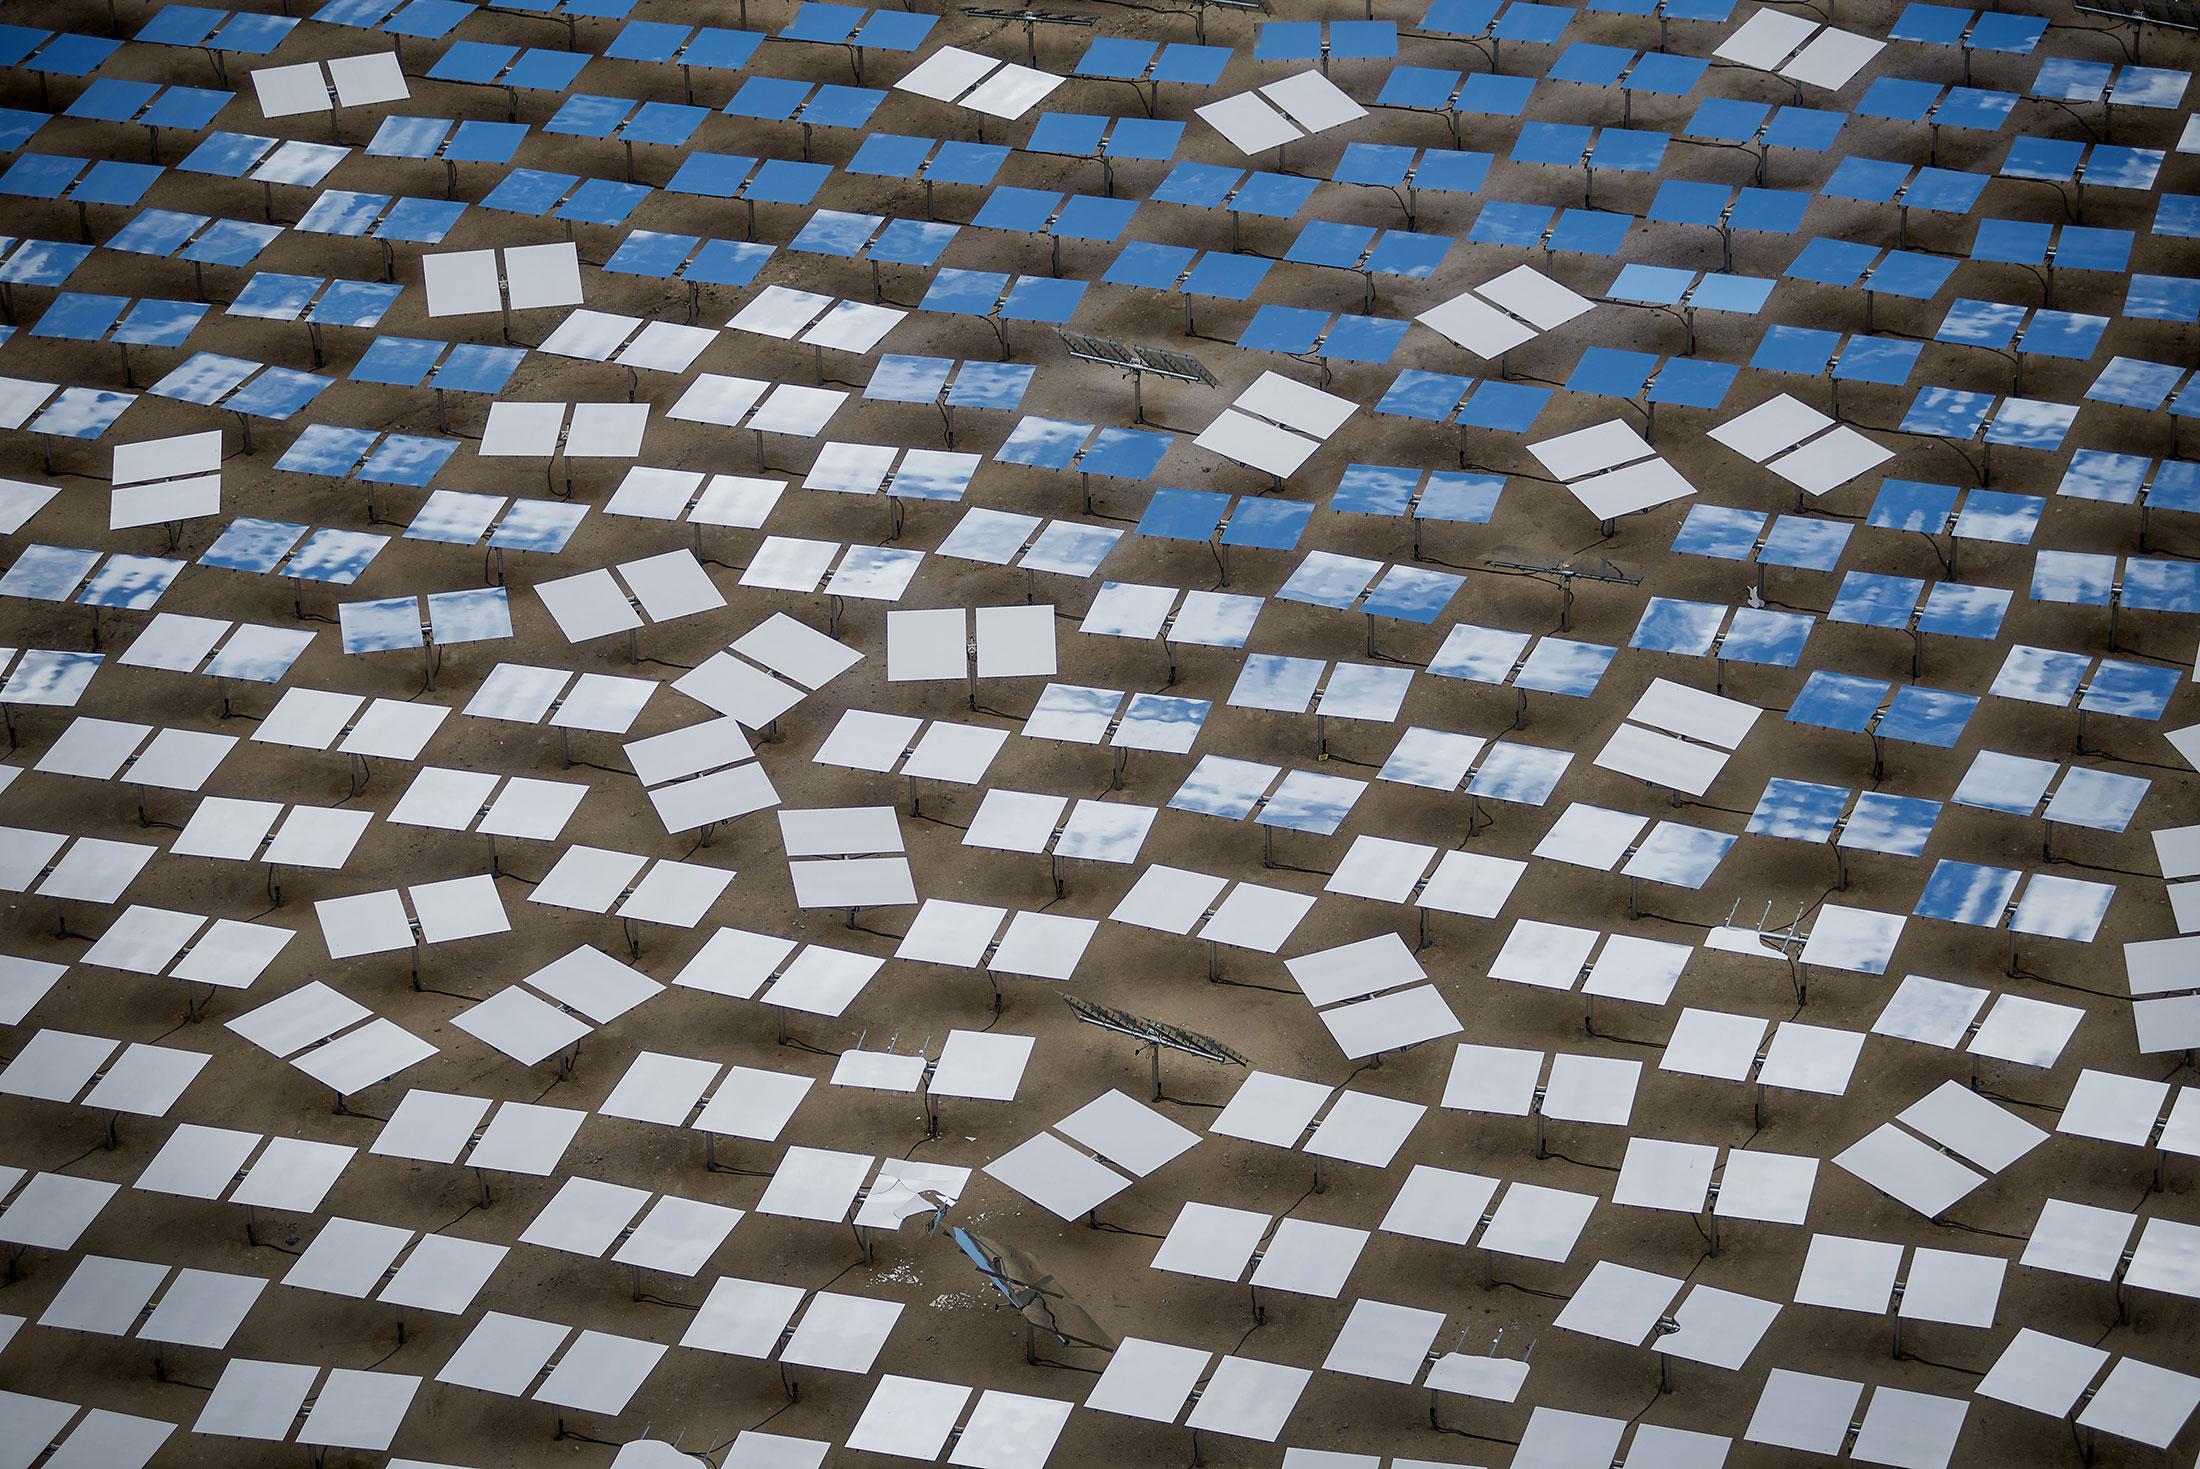 Solar panels stand at the Ivanpah Solar Electric Generating System in the Mojave Desert near Primm, Nevada.